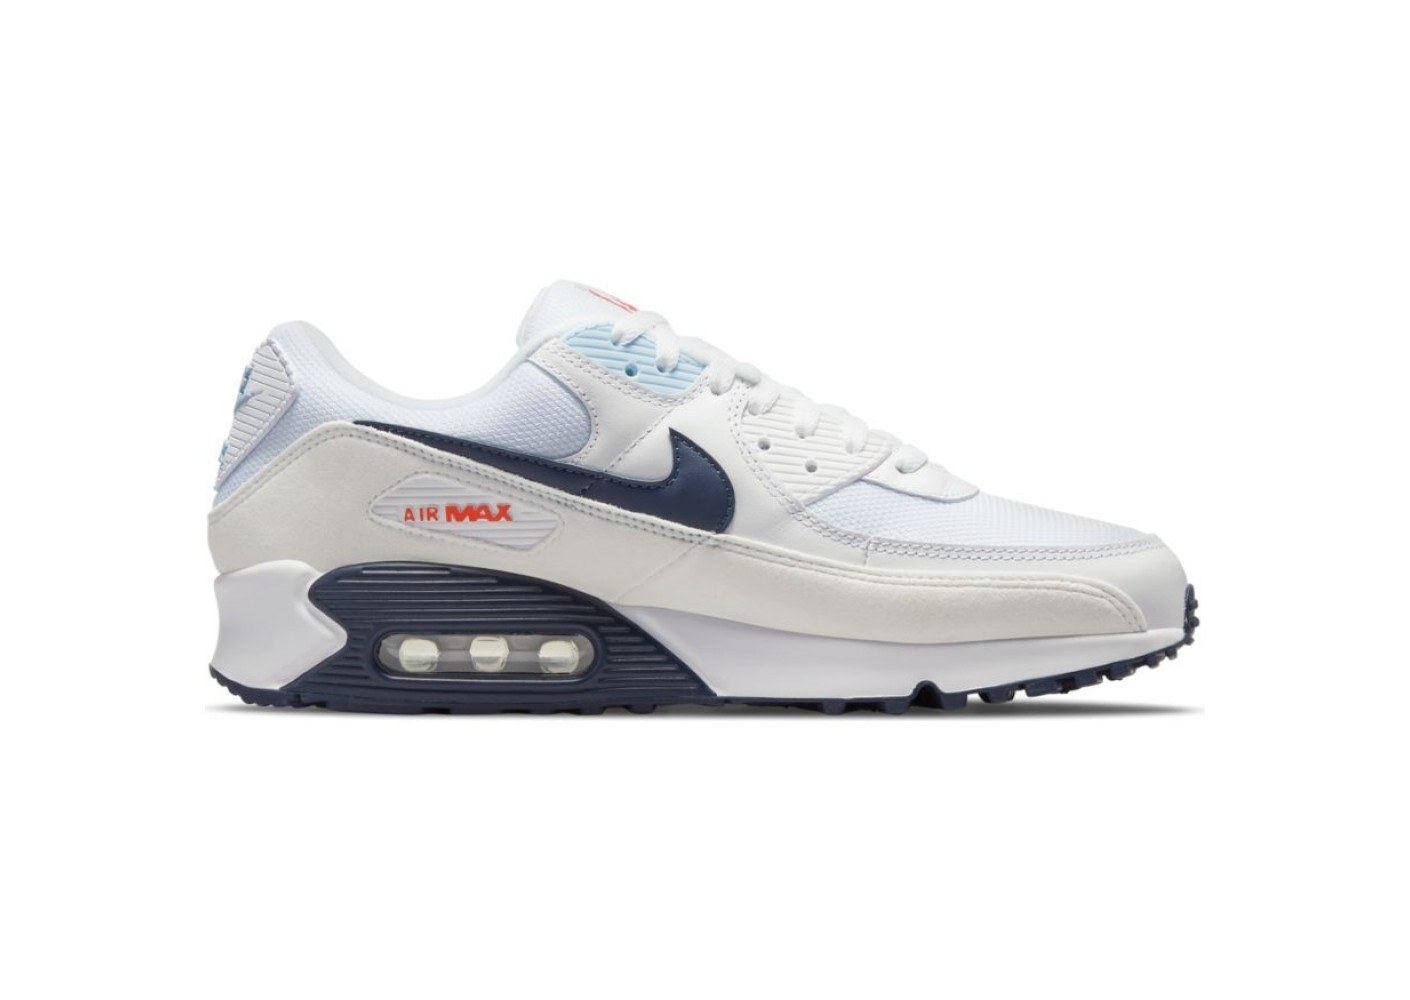 Nike Nike Air Max 90 blanc marine et rouge Homme - Chaussures ...